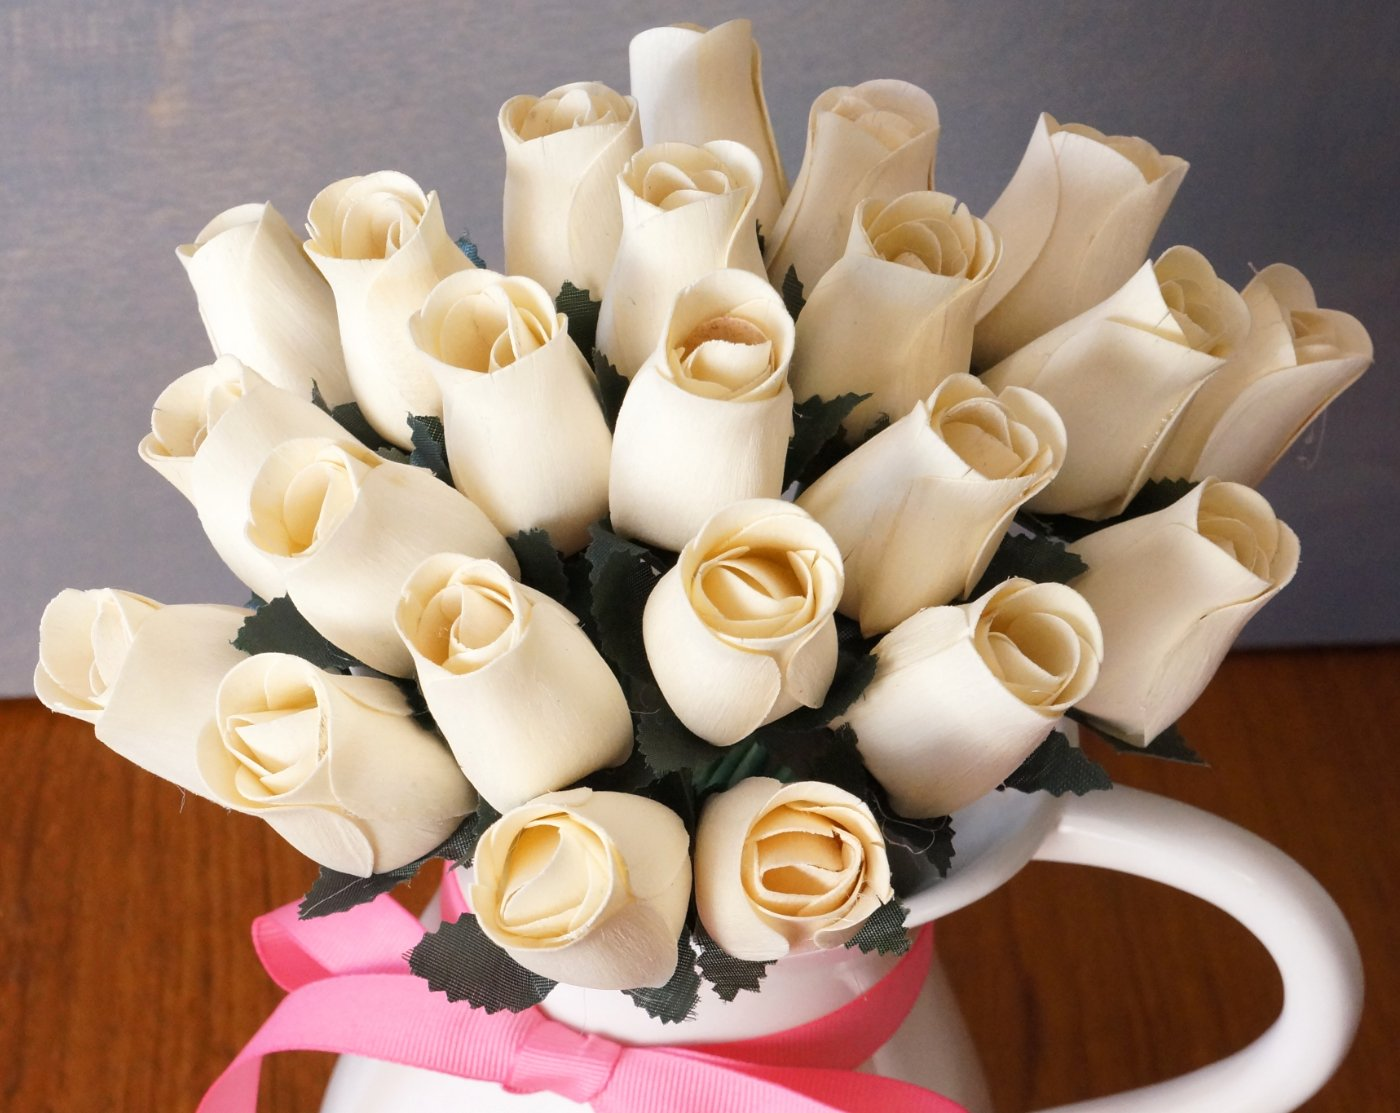 Amazon Orchid Ivy 24 Beautiful Realistic Wooden Roses White